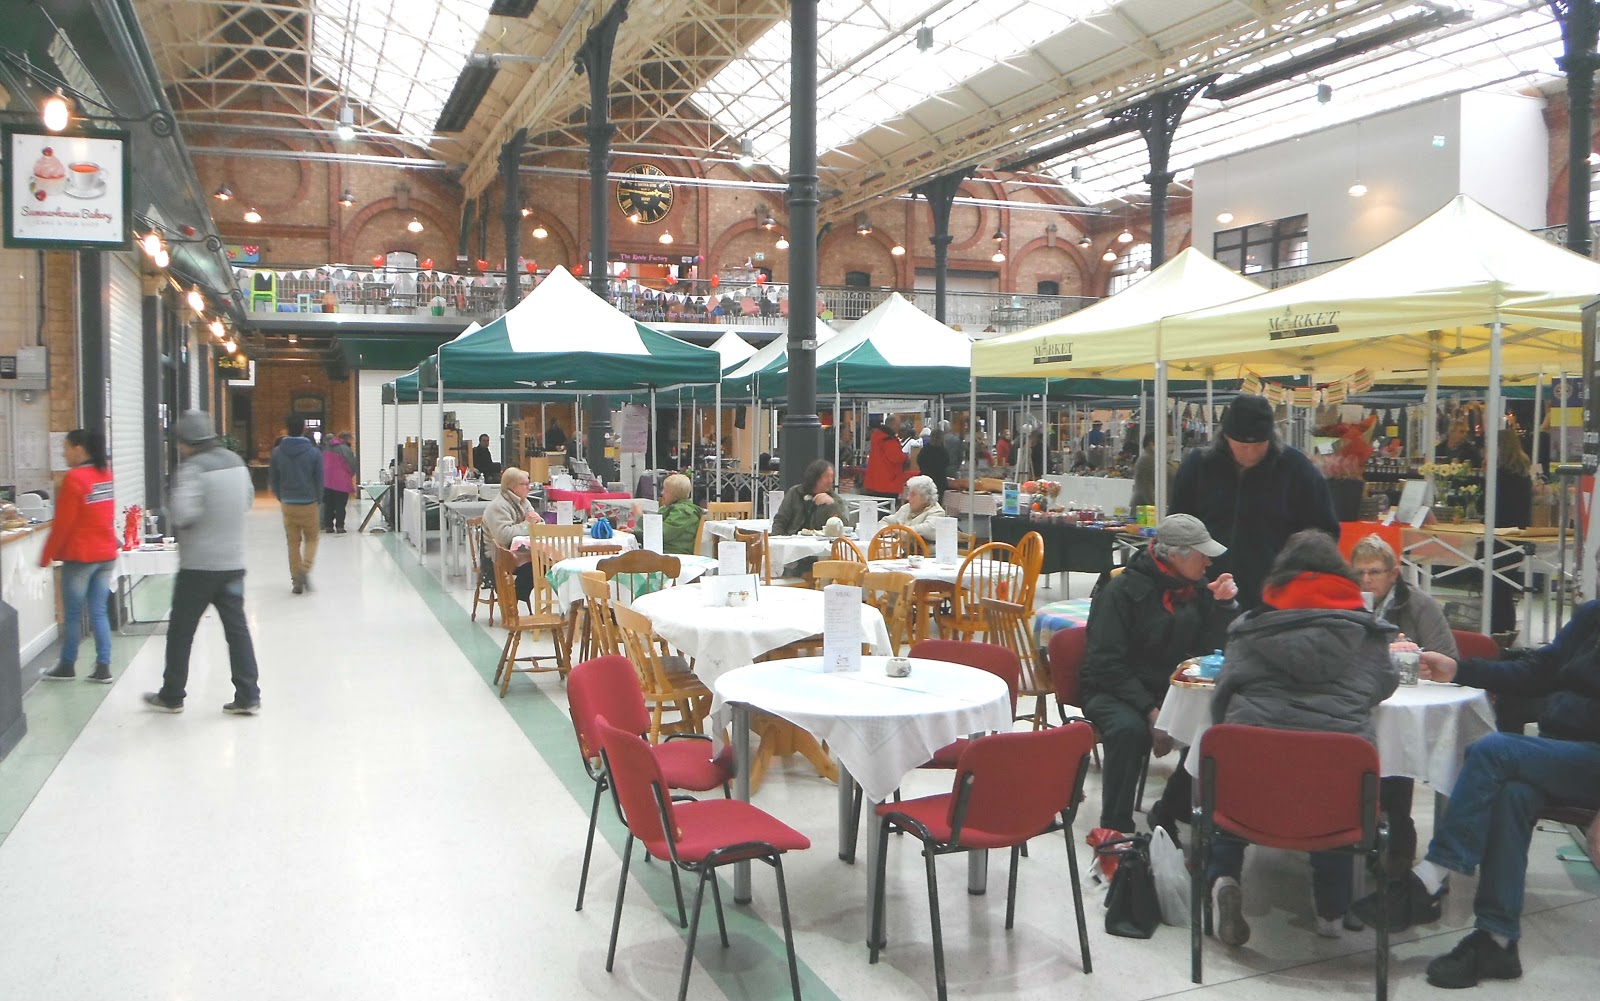 Market cafe in Burton